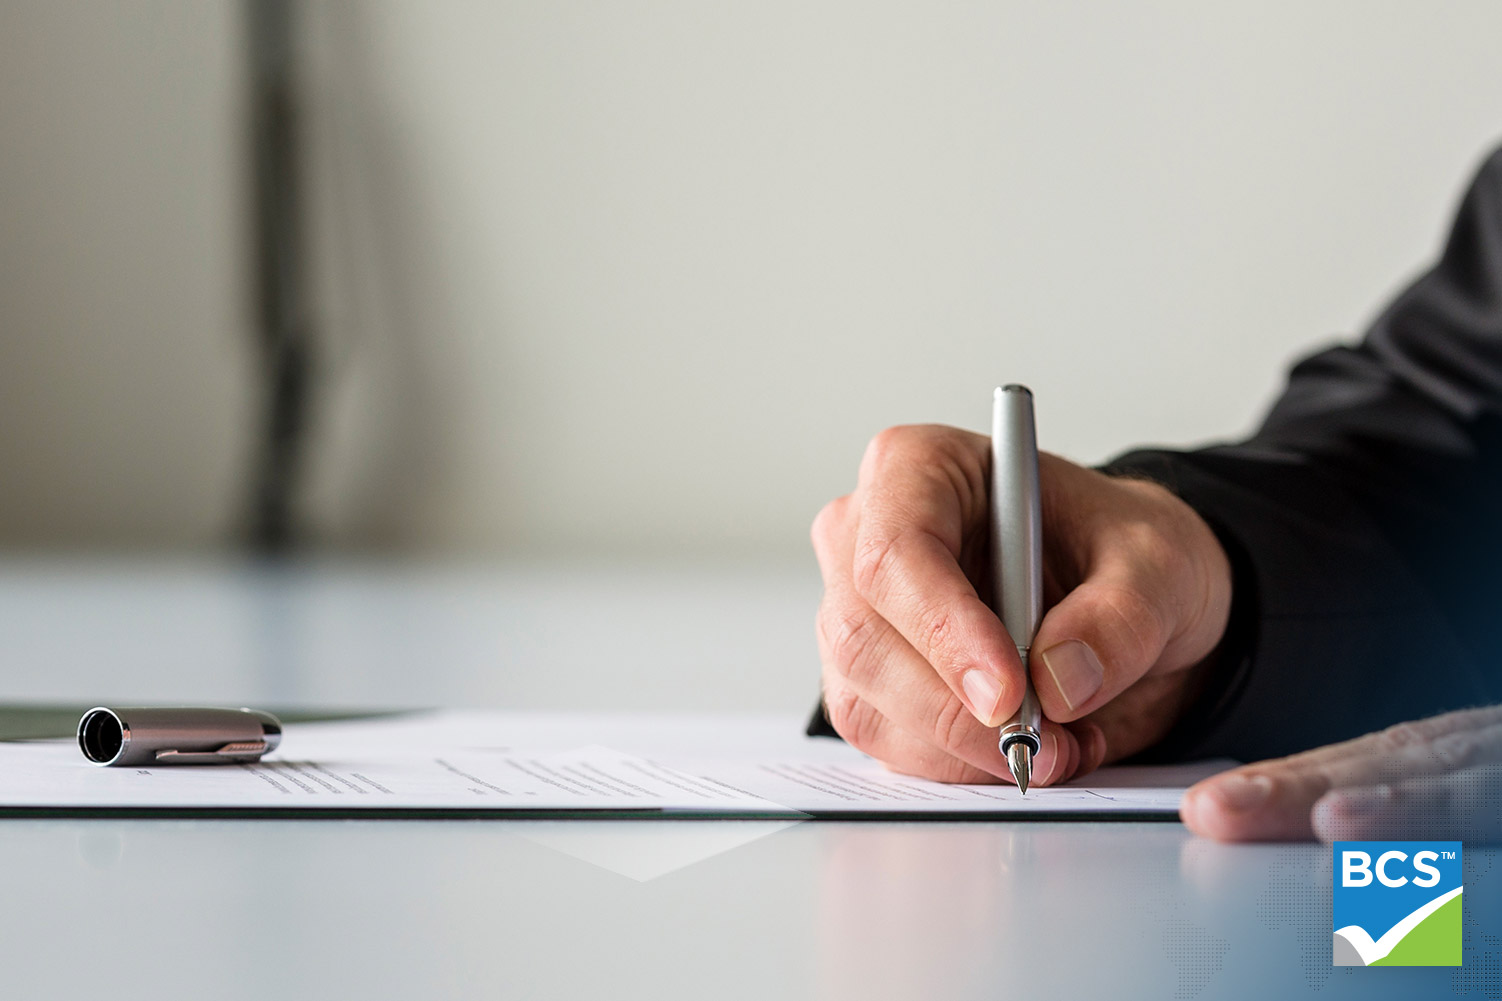 Wide panorama view of businessman hand signing insurance document